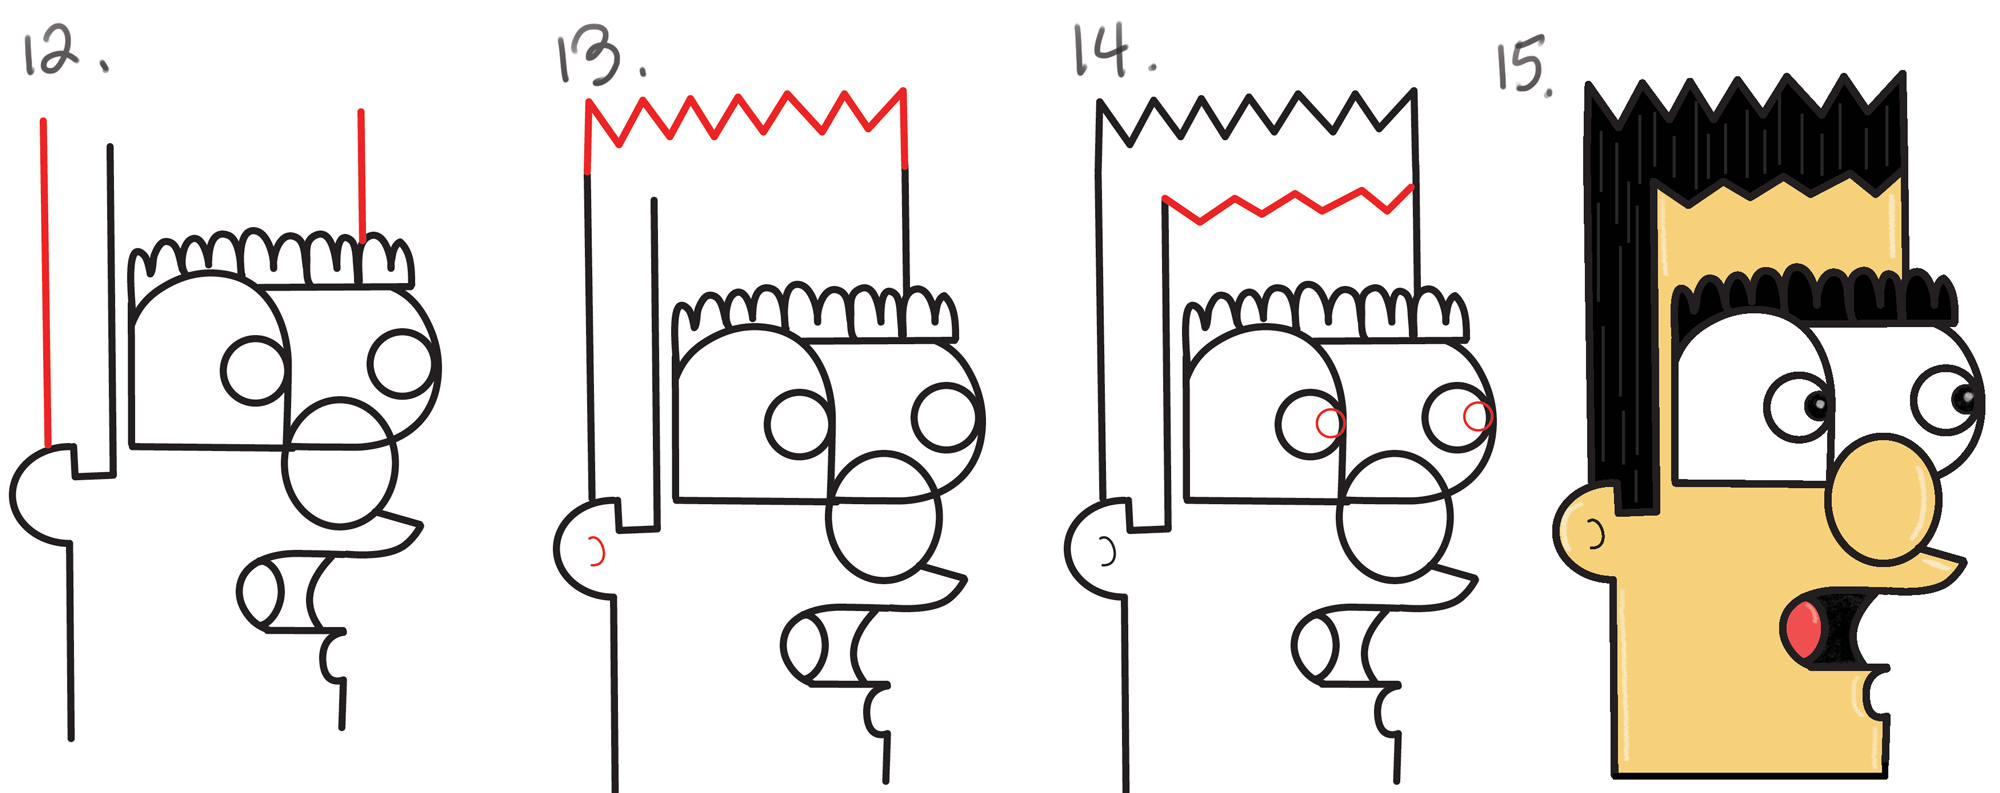 2000x793 How To Draw A Cartoon Man From Lowercase Letter N In Easy Steps